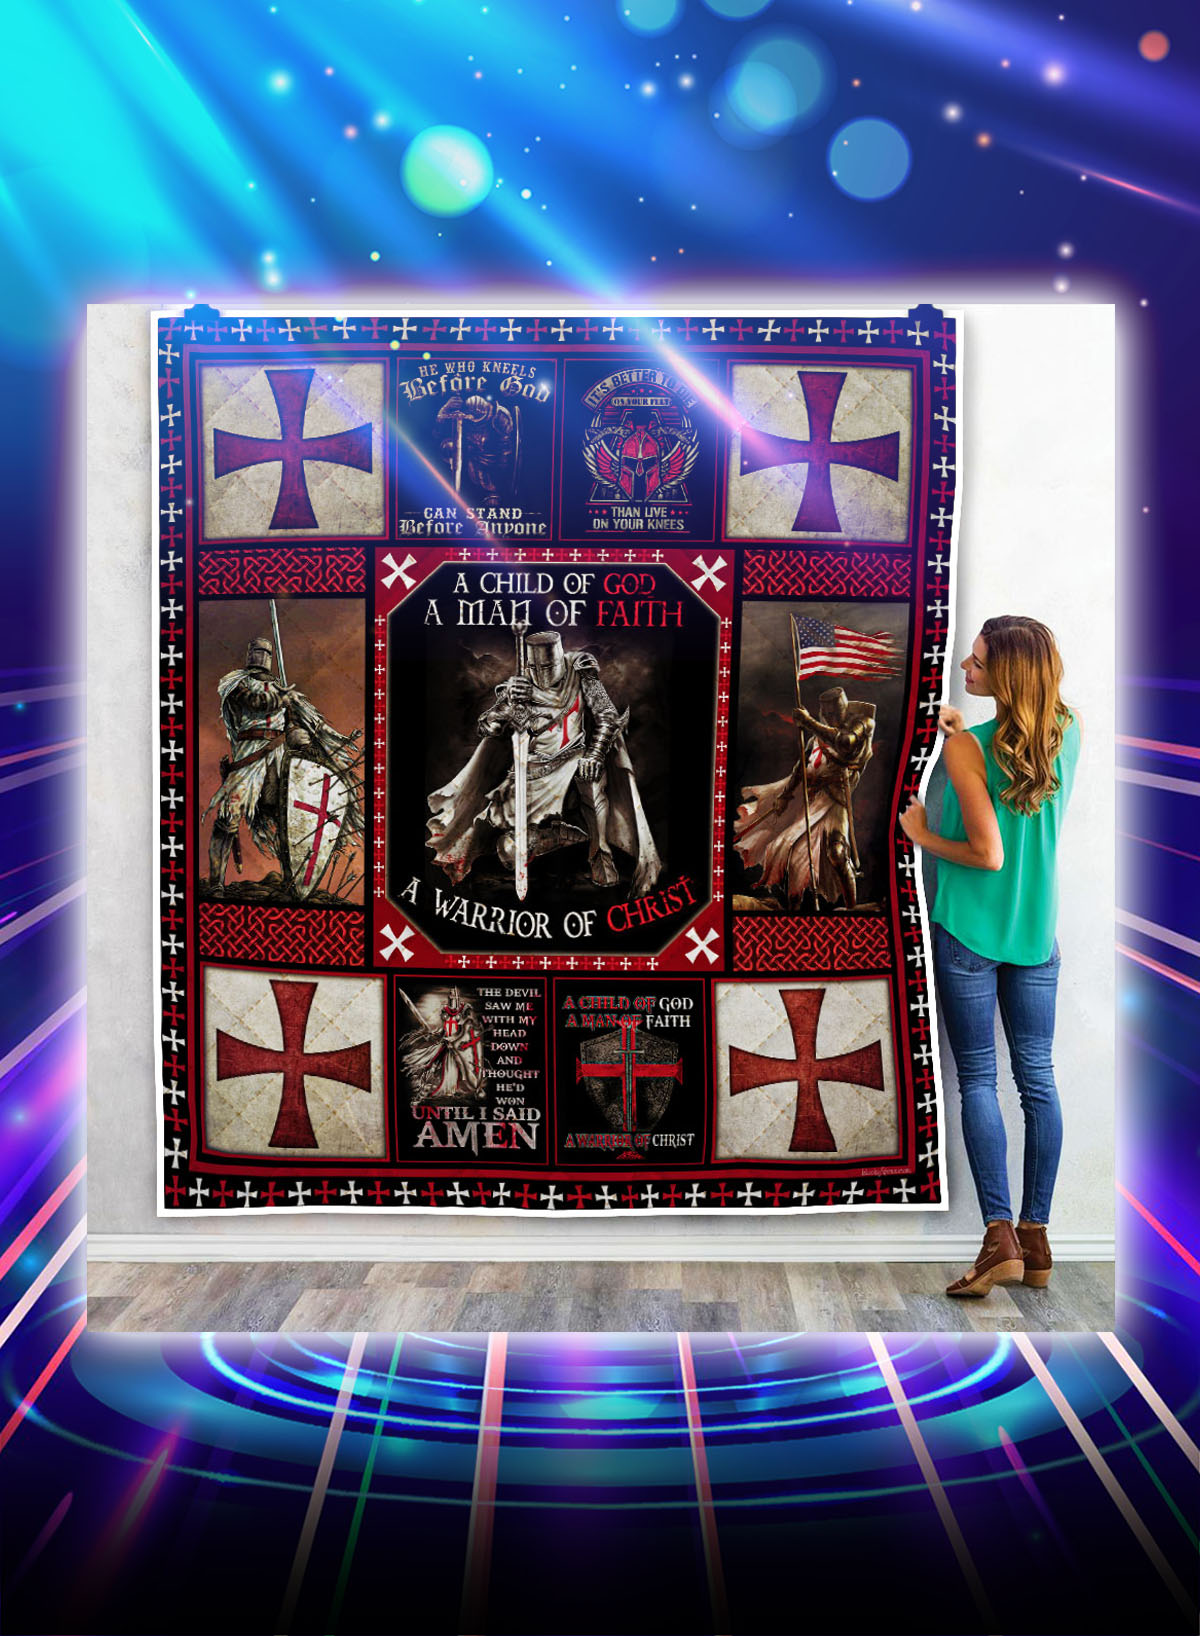 The knights templar a warrior of christ quilt blanket